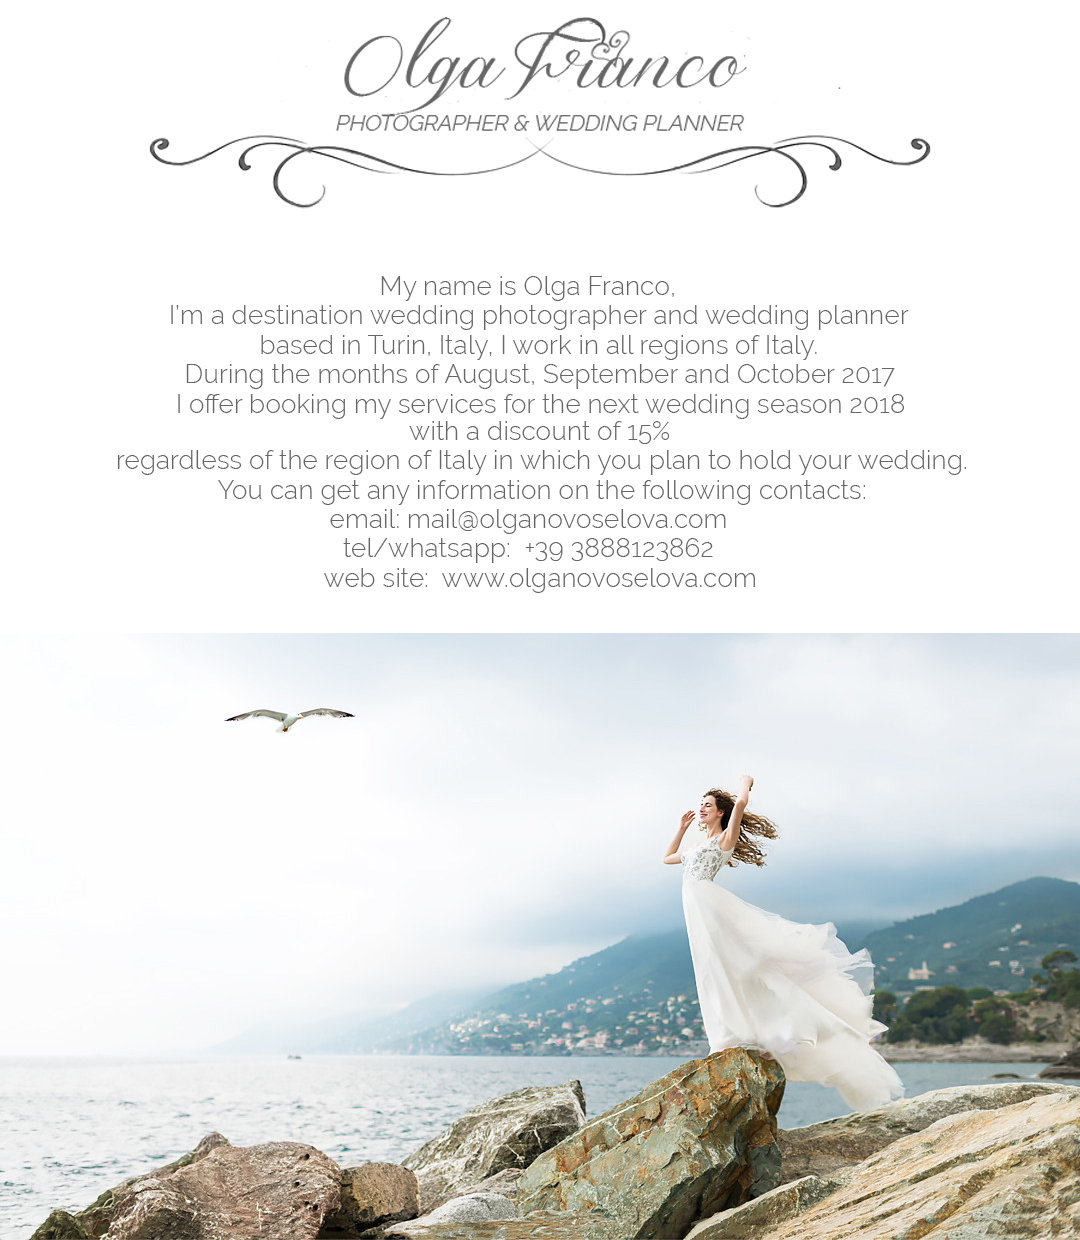 discounts-on-booking-wedding-photographer-services-in-italy-2018